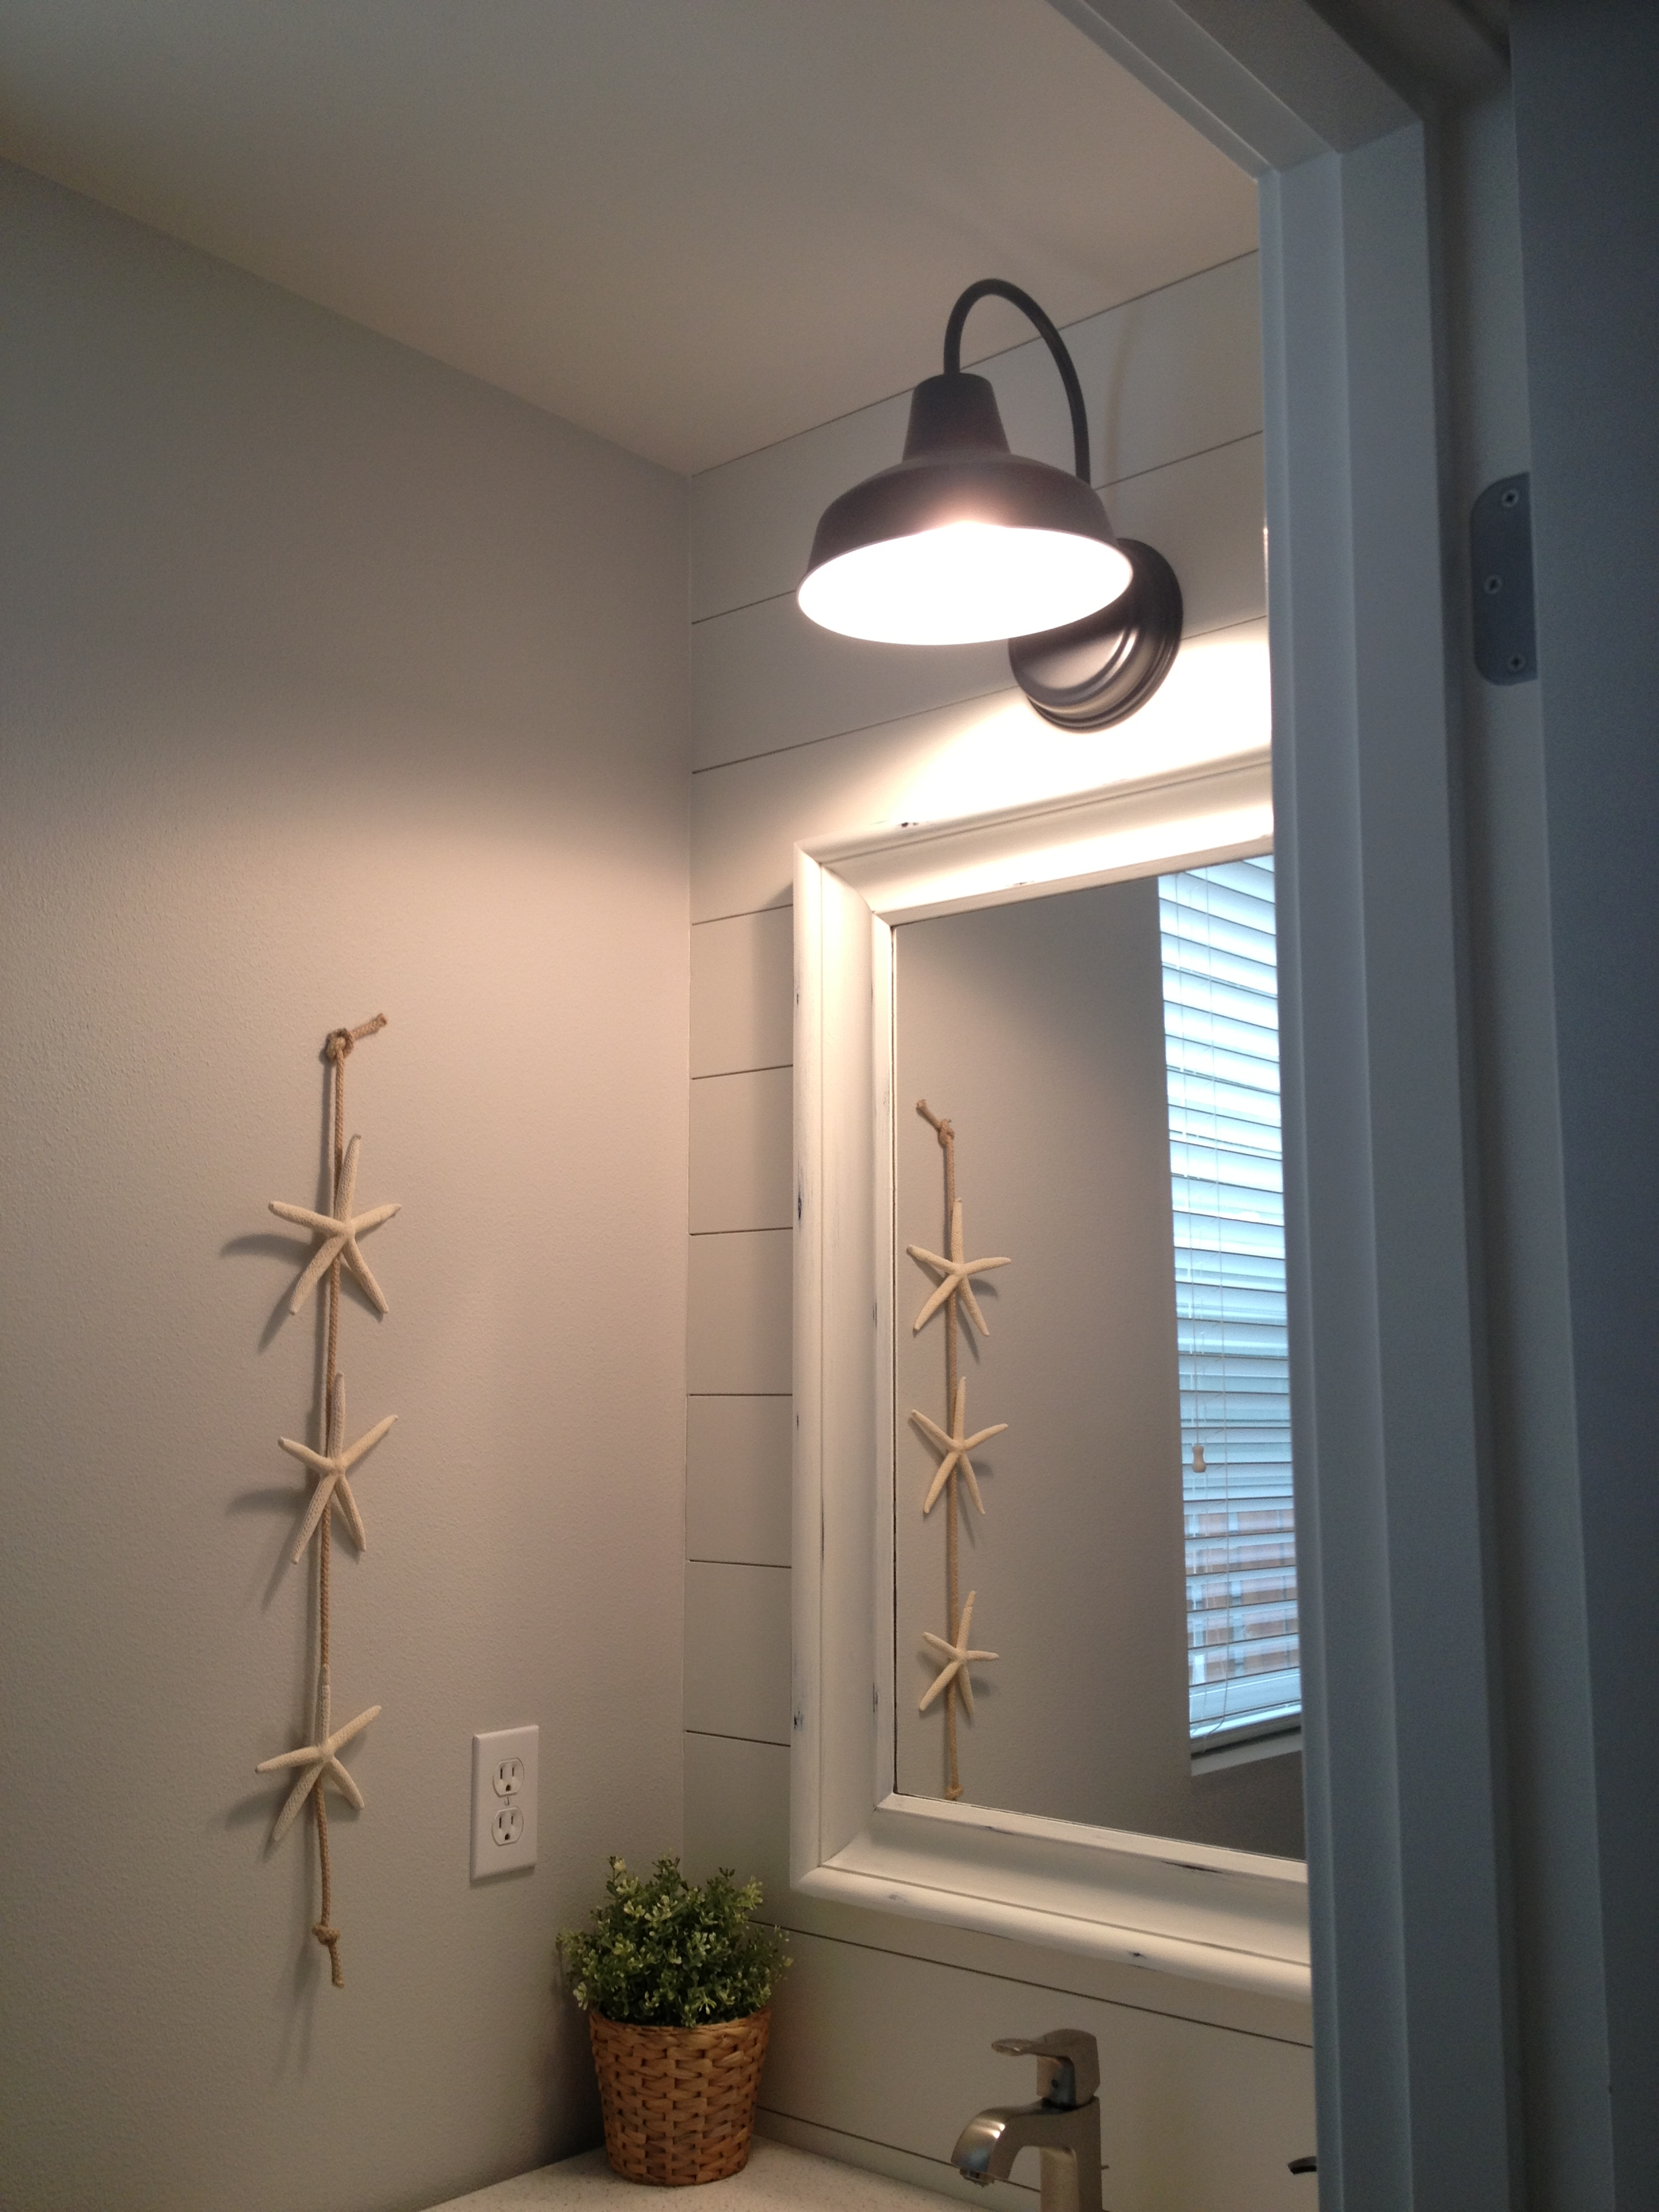 I love the style of the light and it  39 s perfect for my space   Nancy says   The look is exactly what I wanted and the quality is amazing. Barn Wall Sconce Lends Farmhouse Look to Powder Room Remake   Blog